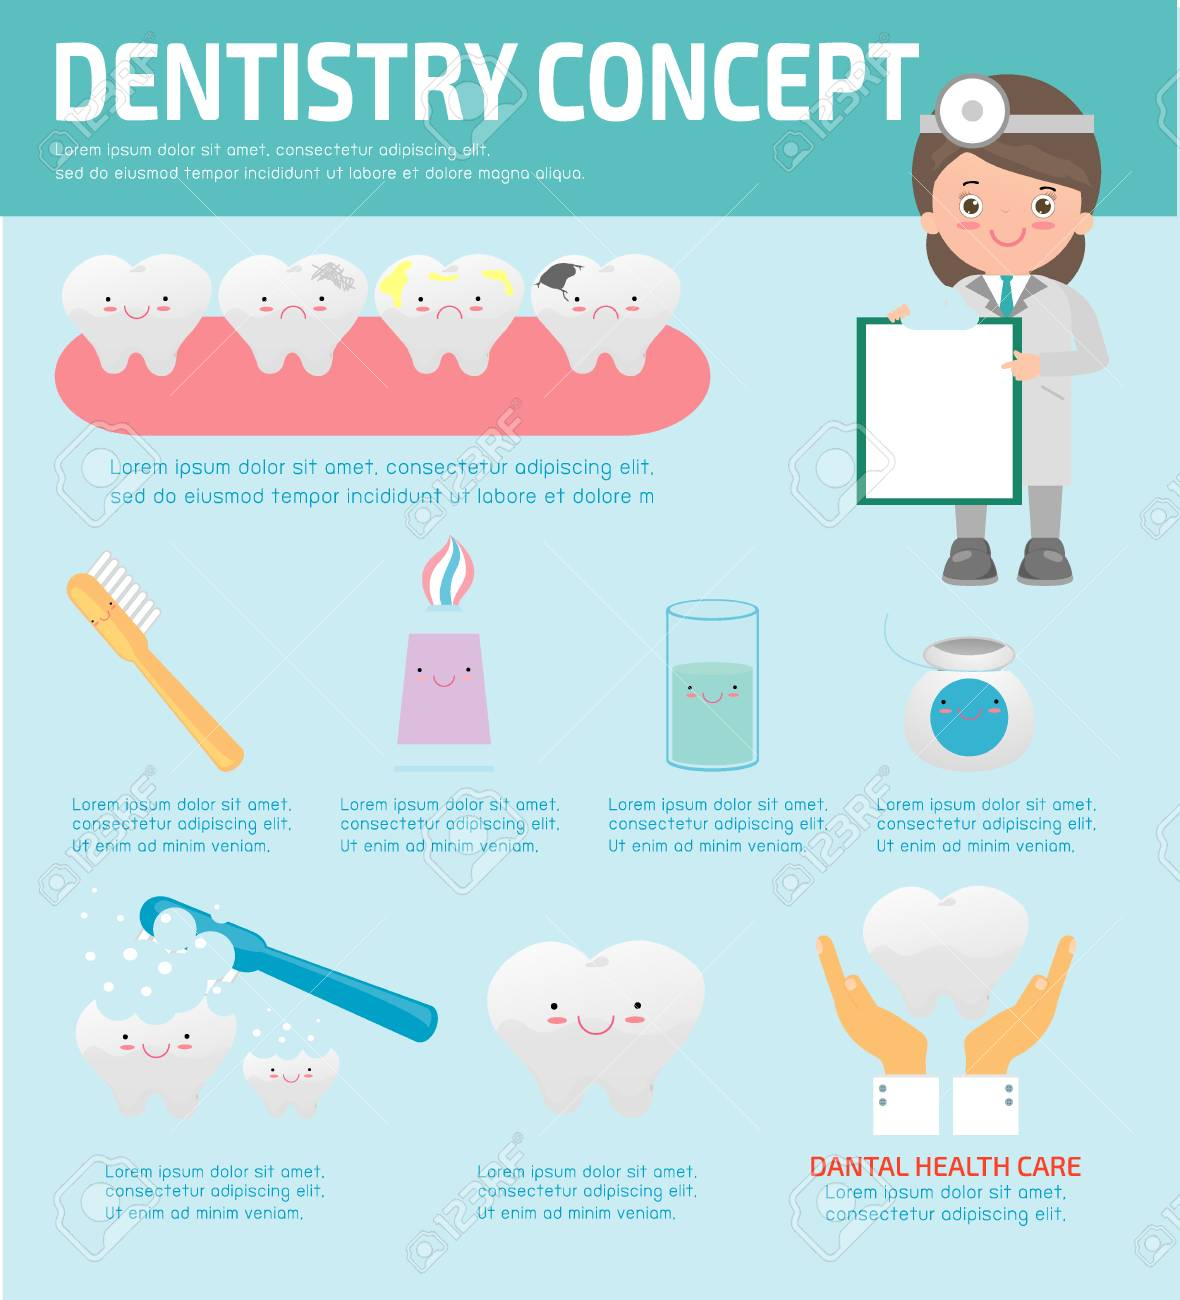 71580505-dentistry-concept-with-dental-h